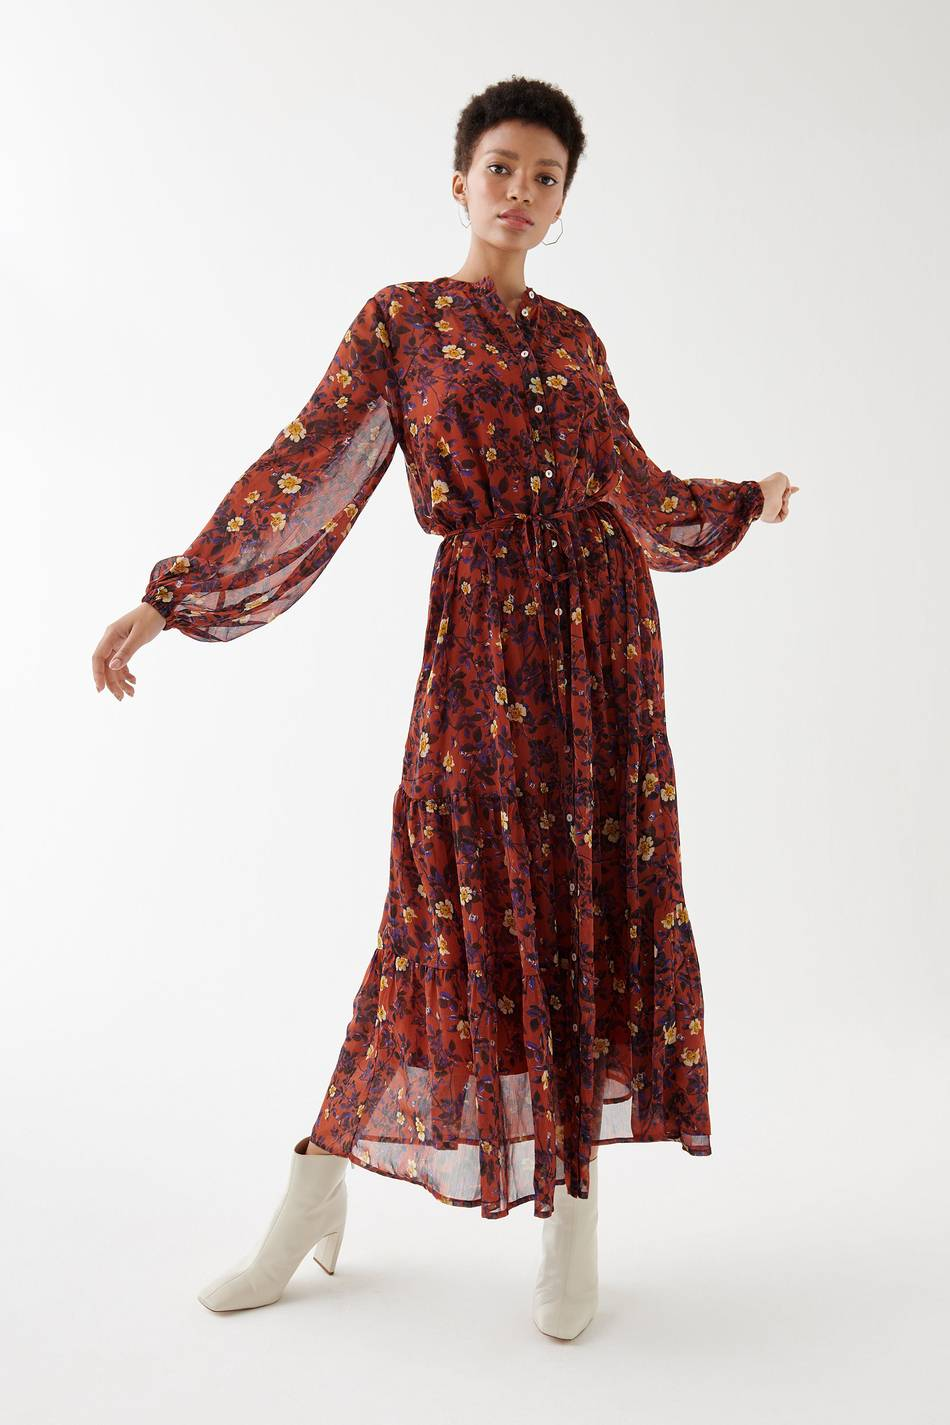 Image of Gina Tricot Alma chiffon maxi dress Fall flower (9197)